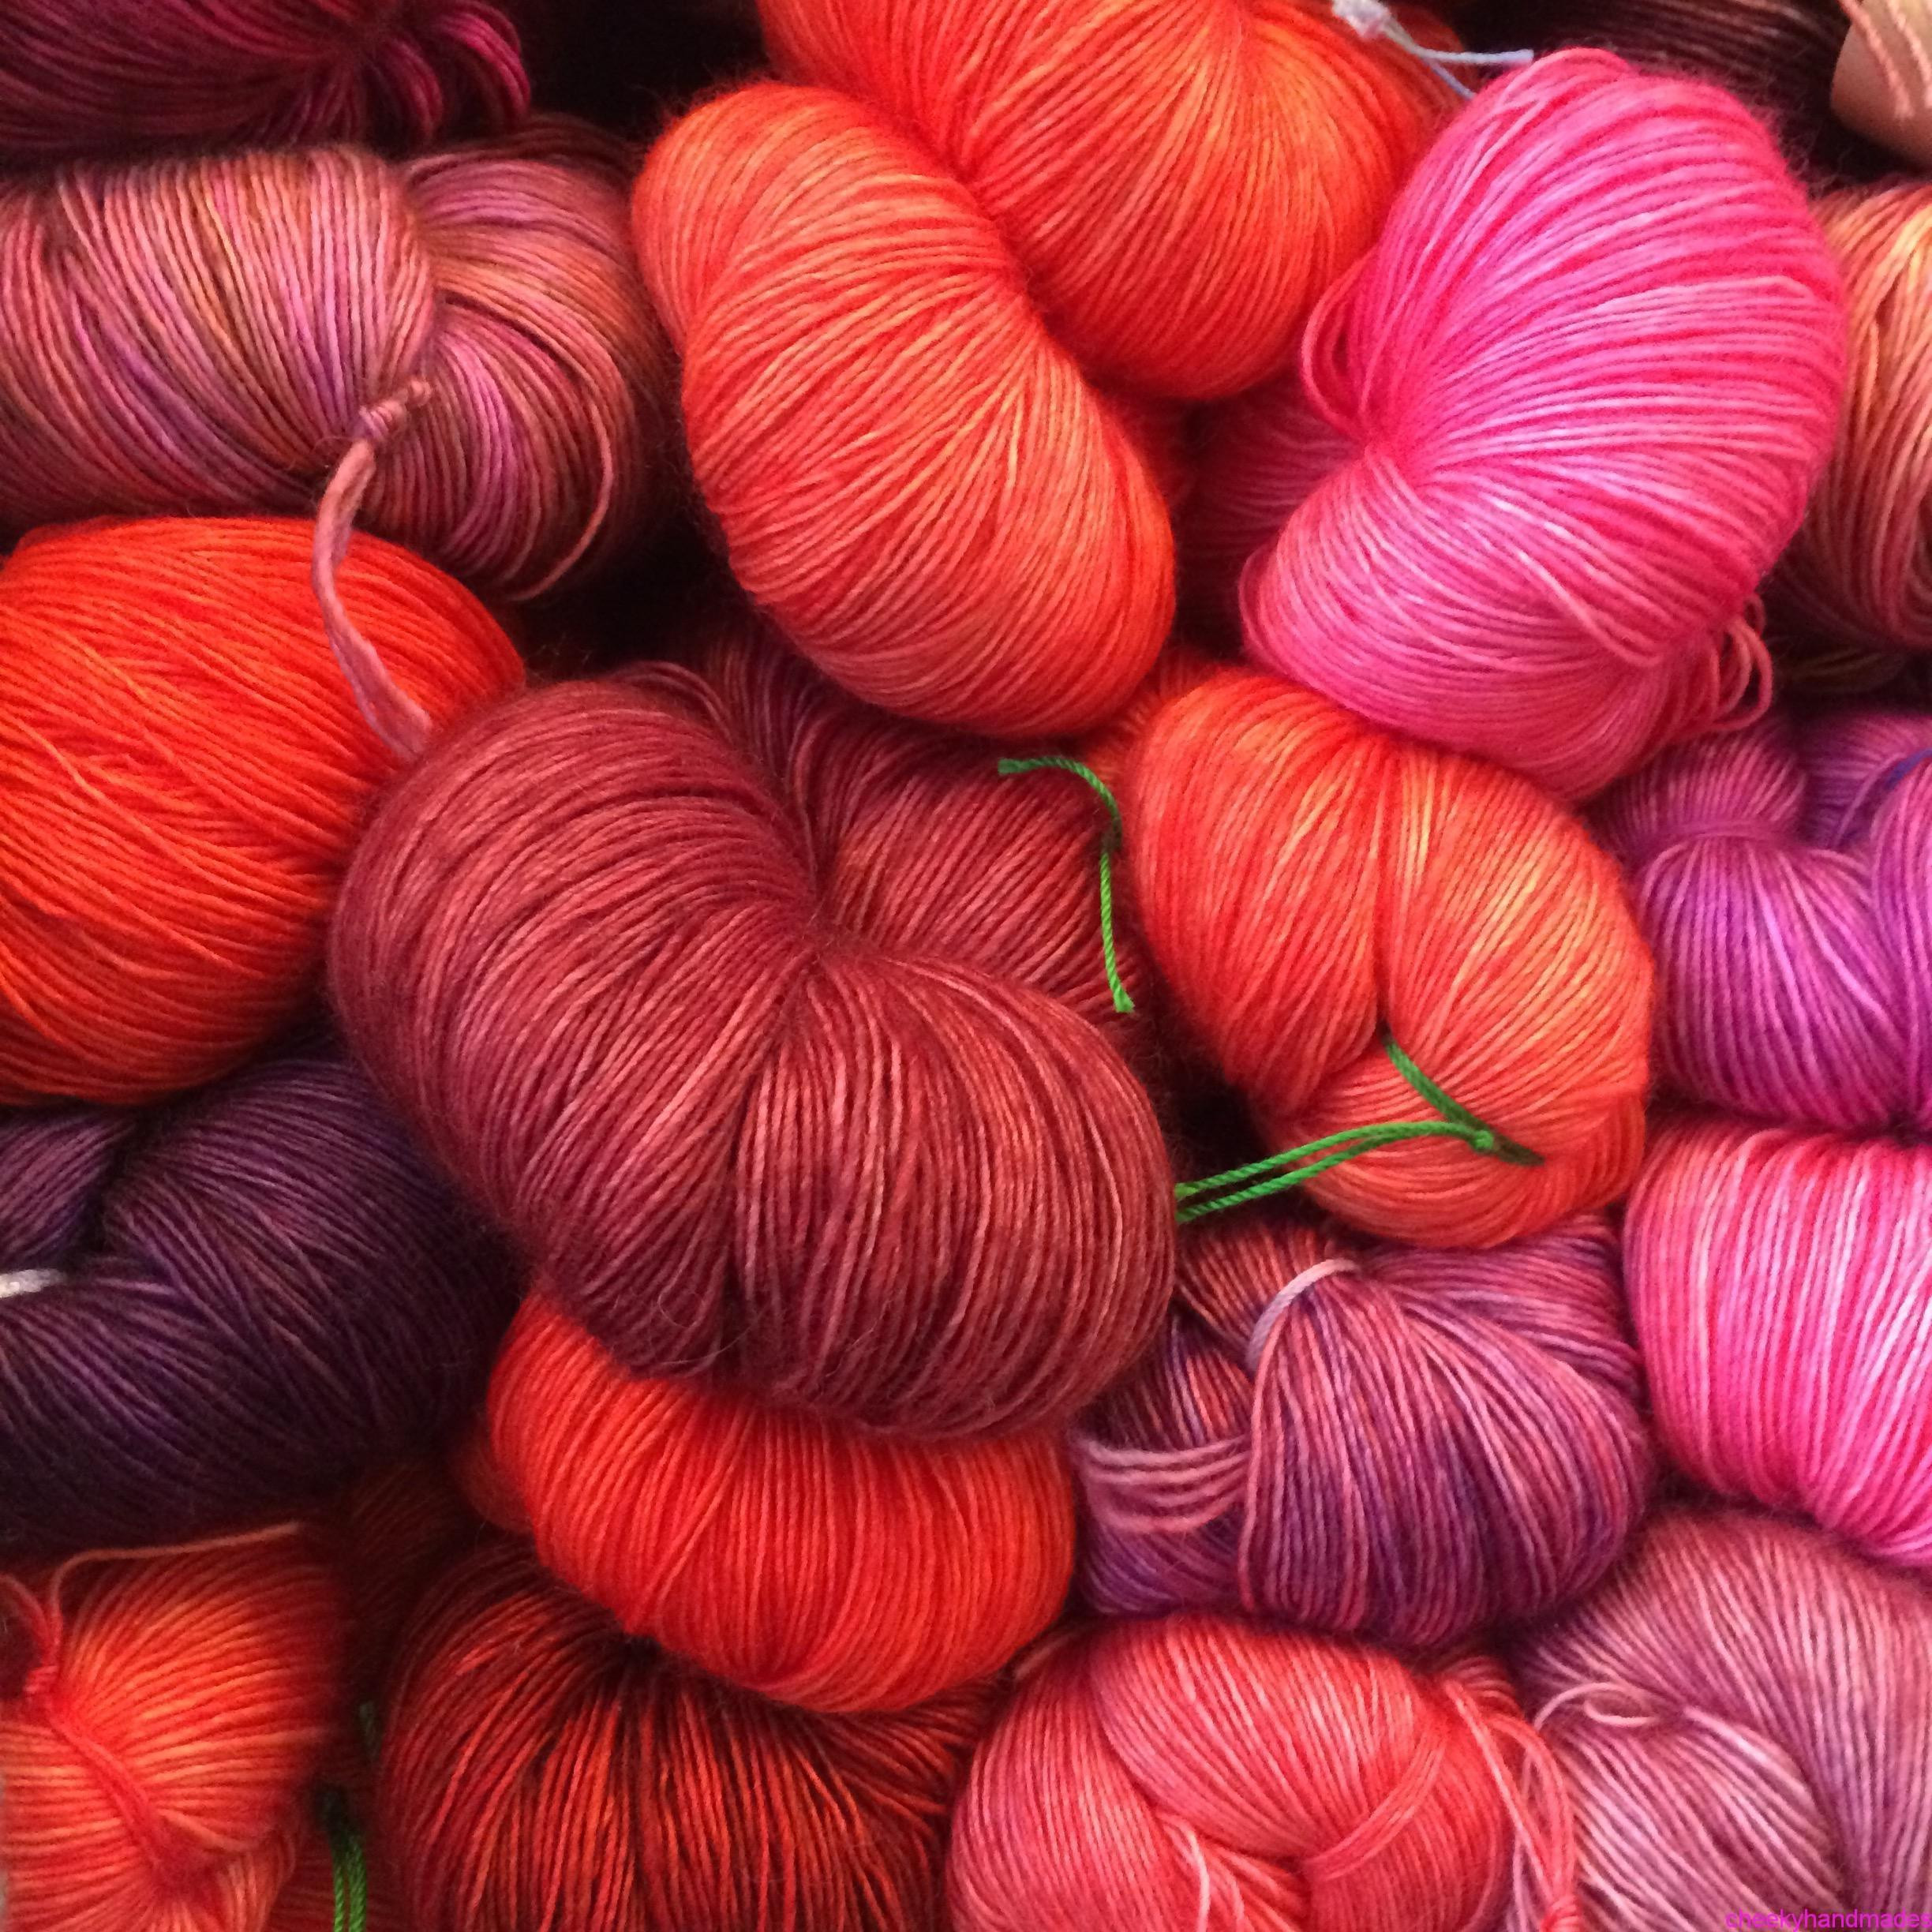 New Cheekyhandmades Yarn Outlet Of Amazing 50 Photos Yarn Outlet